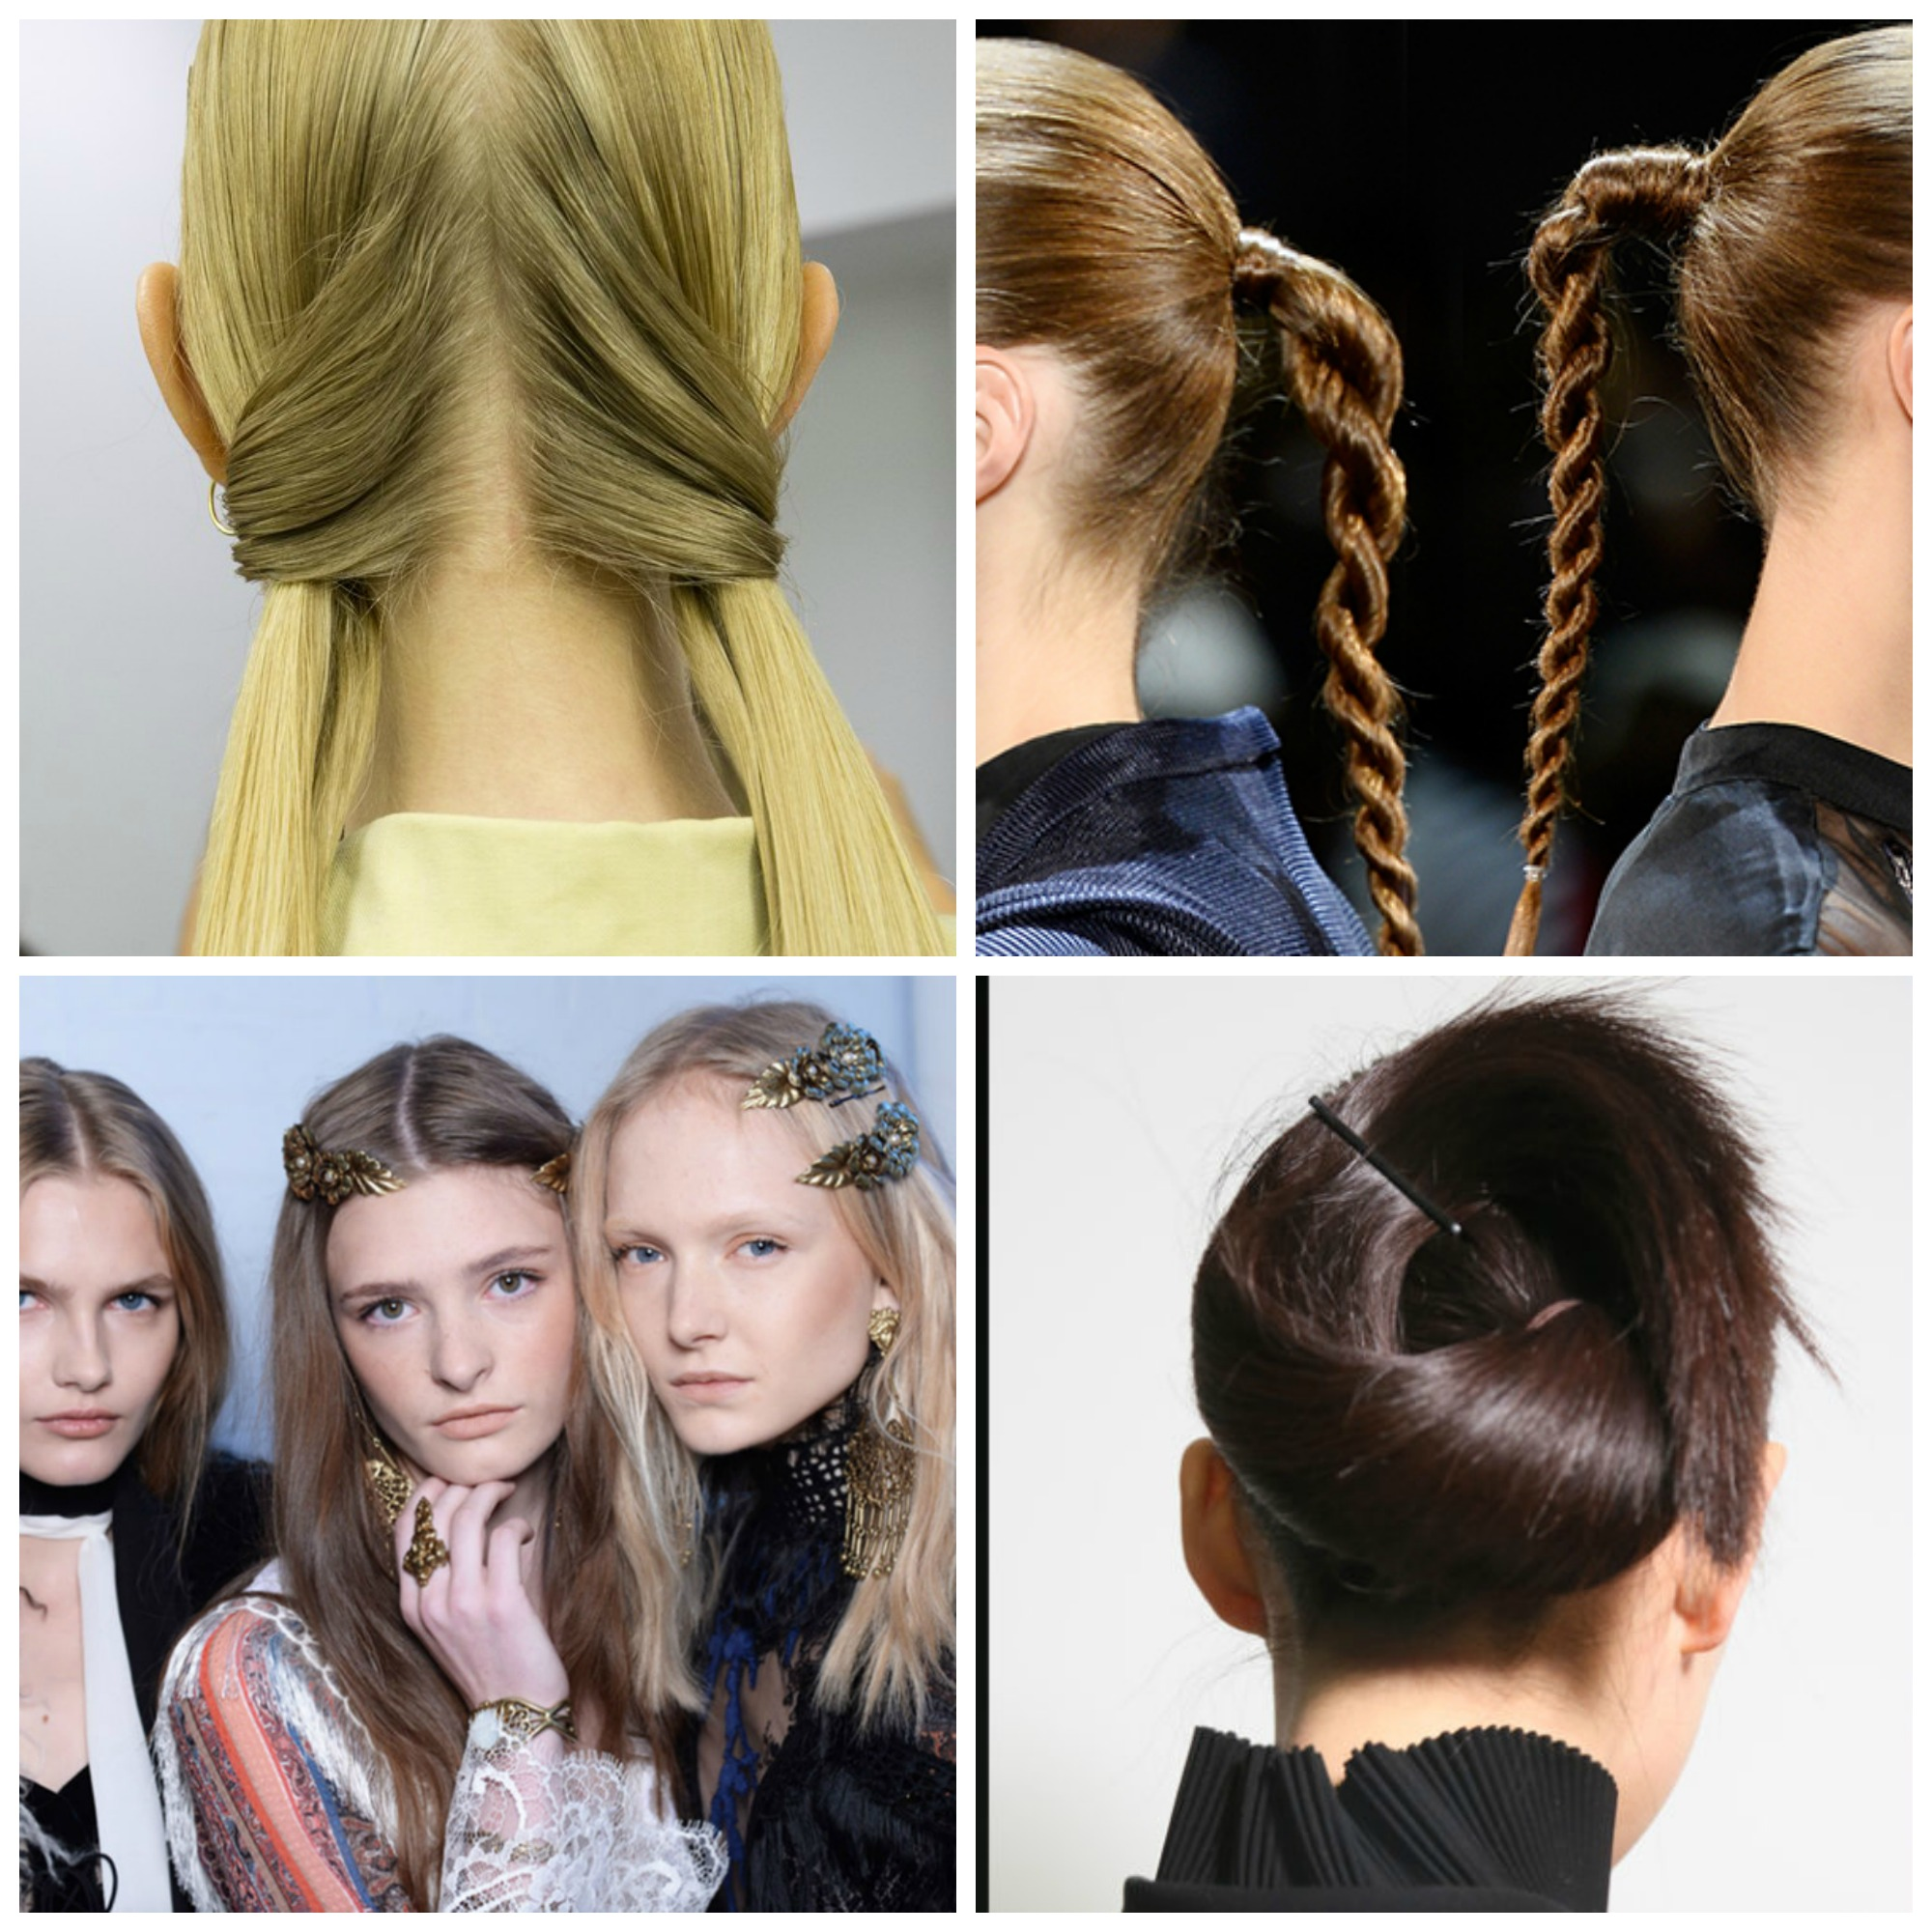 ss16 hair trends 2